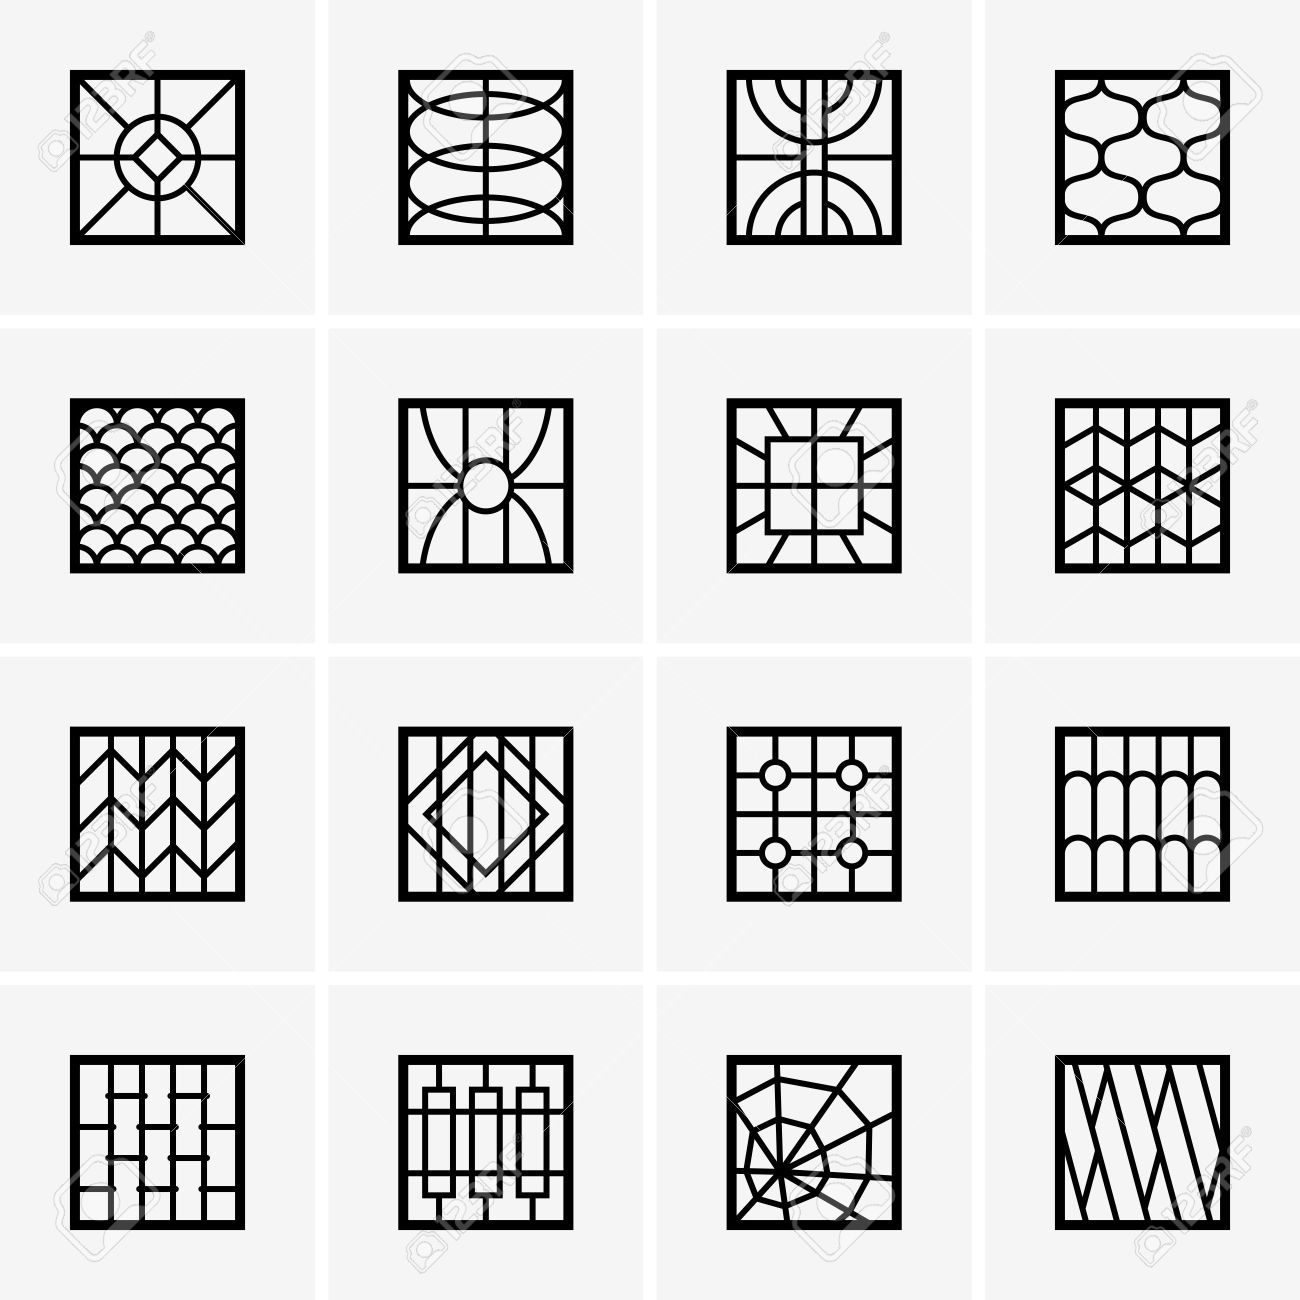 Modern window grills design google search self help for Window design art